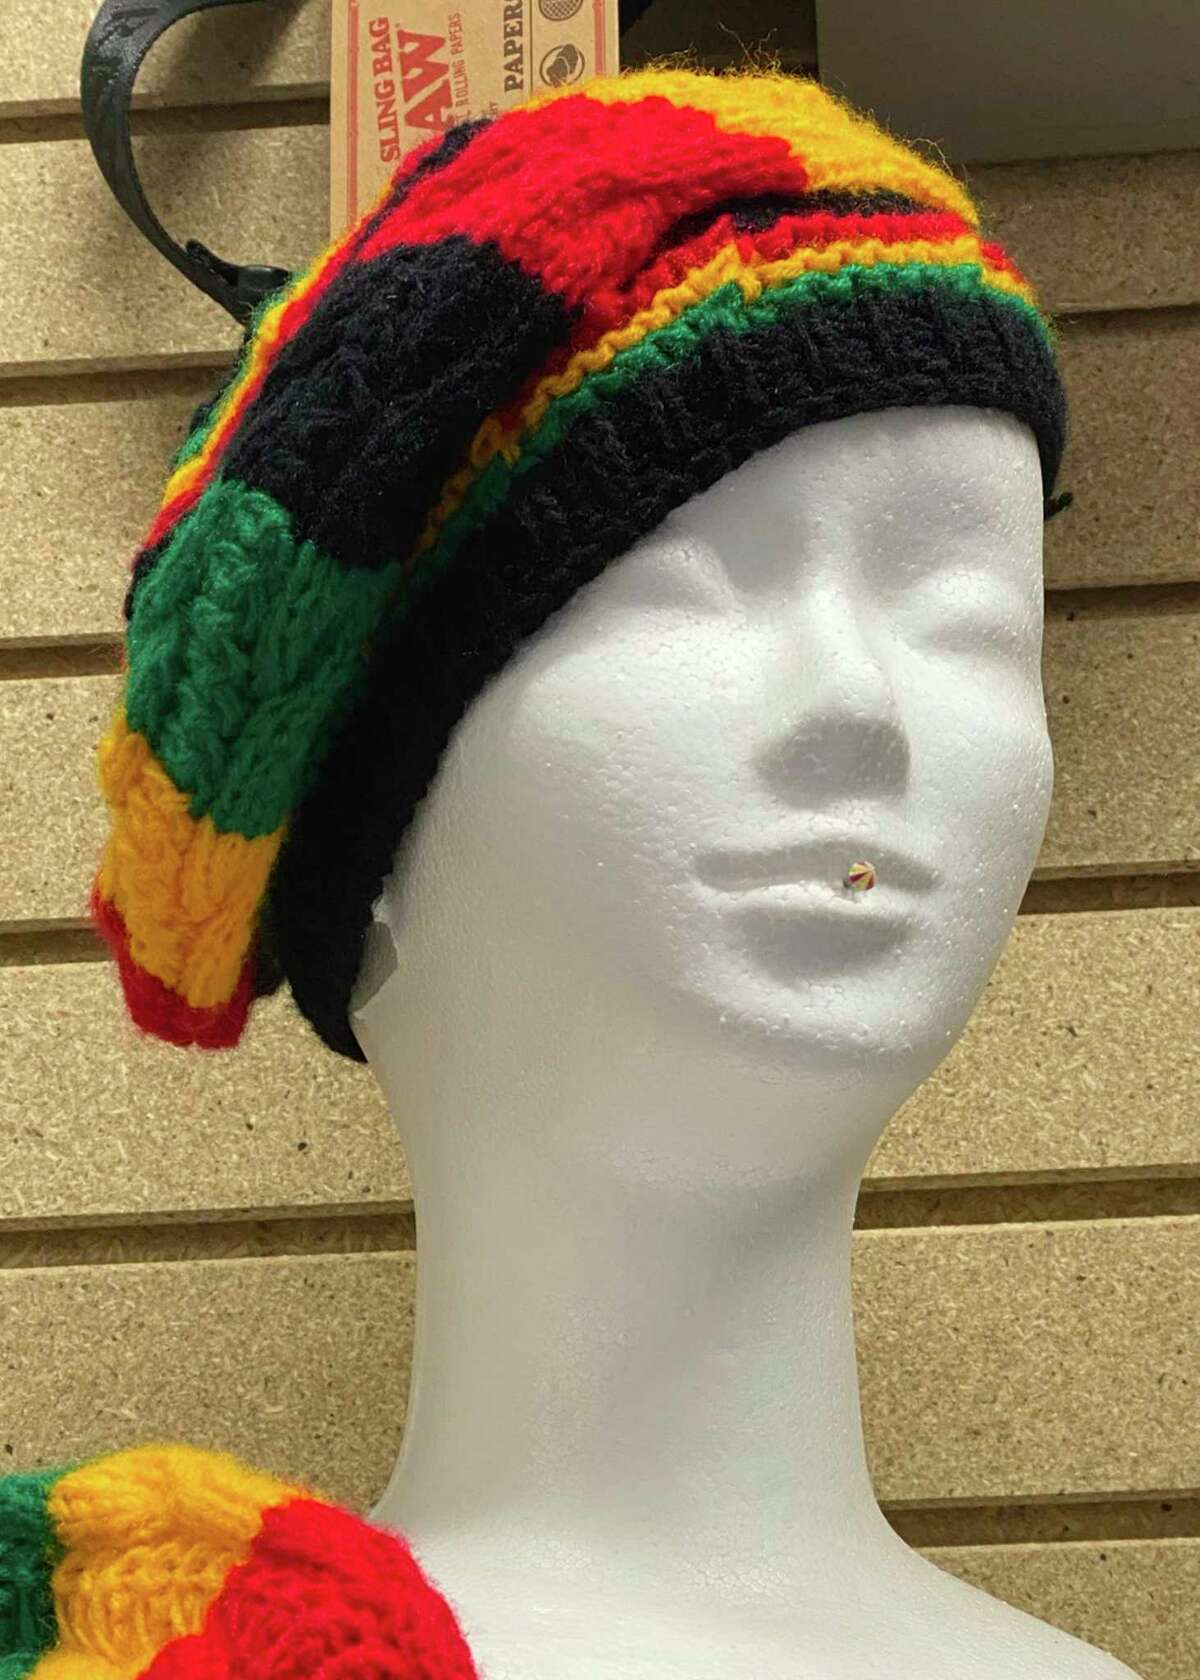 A Rastafarian-style hat sits on a mannequin head in Happy Daze Smoke-N-More in Bad Axe. (Mark Birdsall/Huron Daily Tribune)